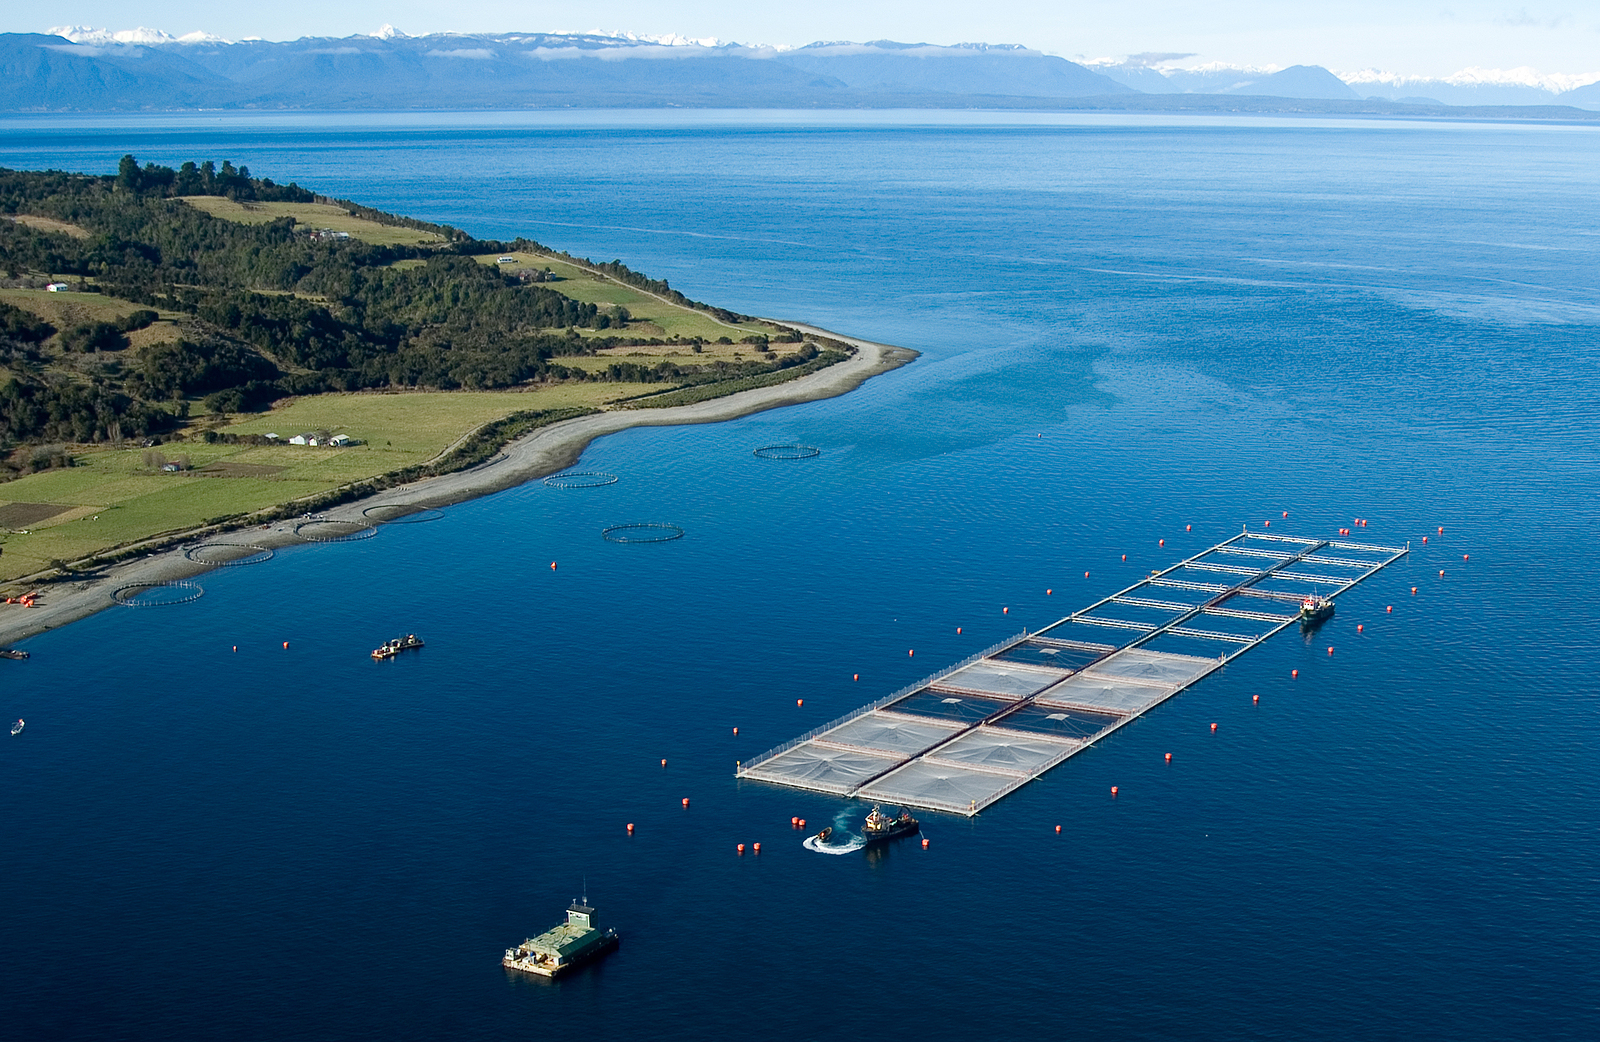 bigstock-Salmon-Cages-On-Islands-In-Sou-22812203